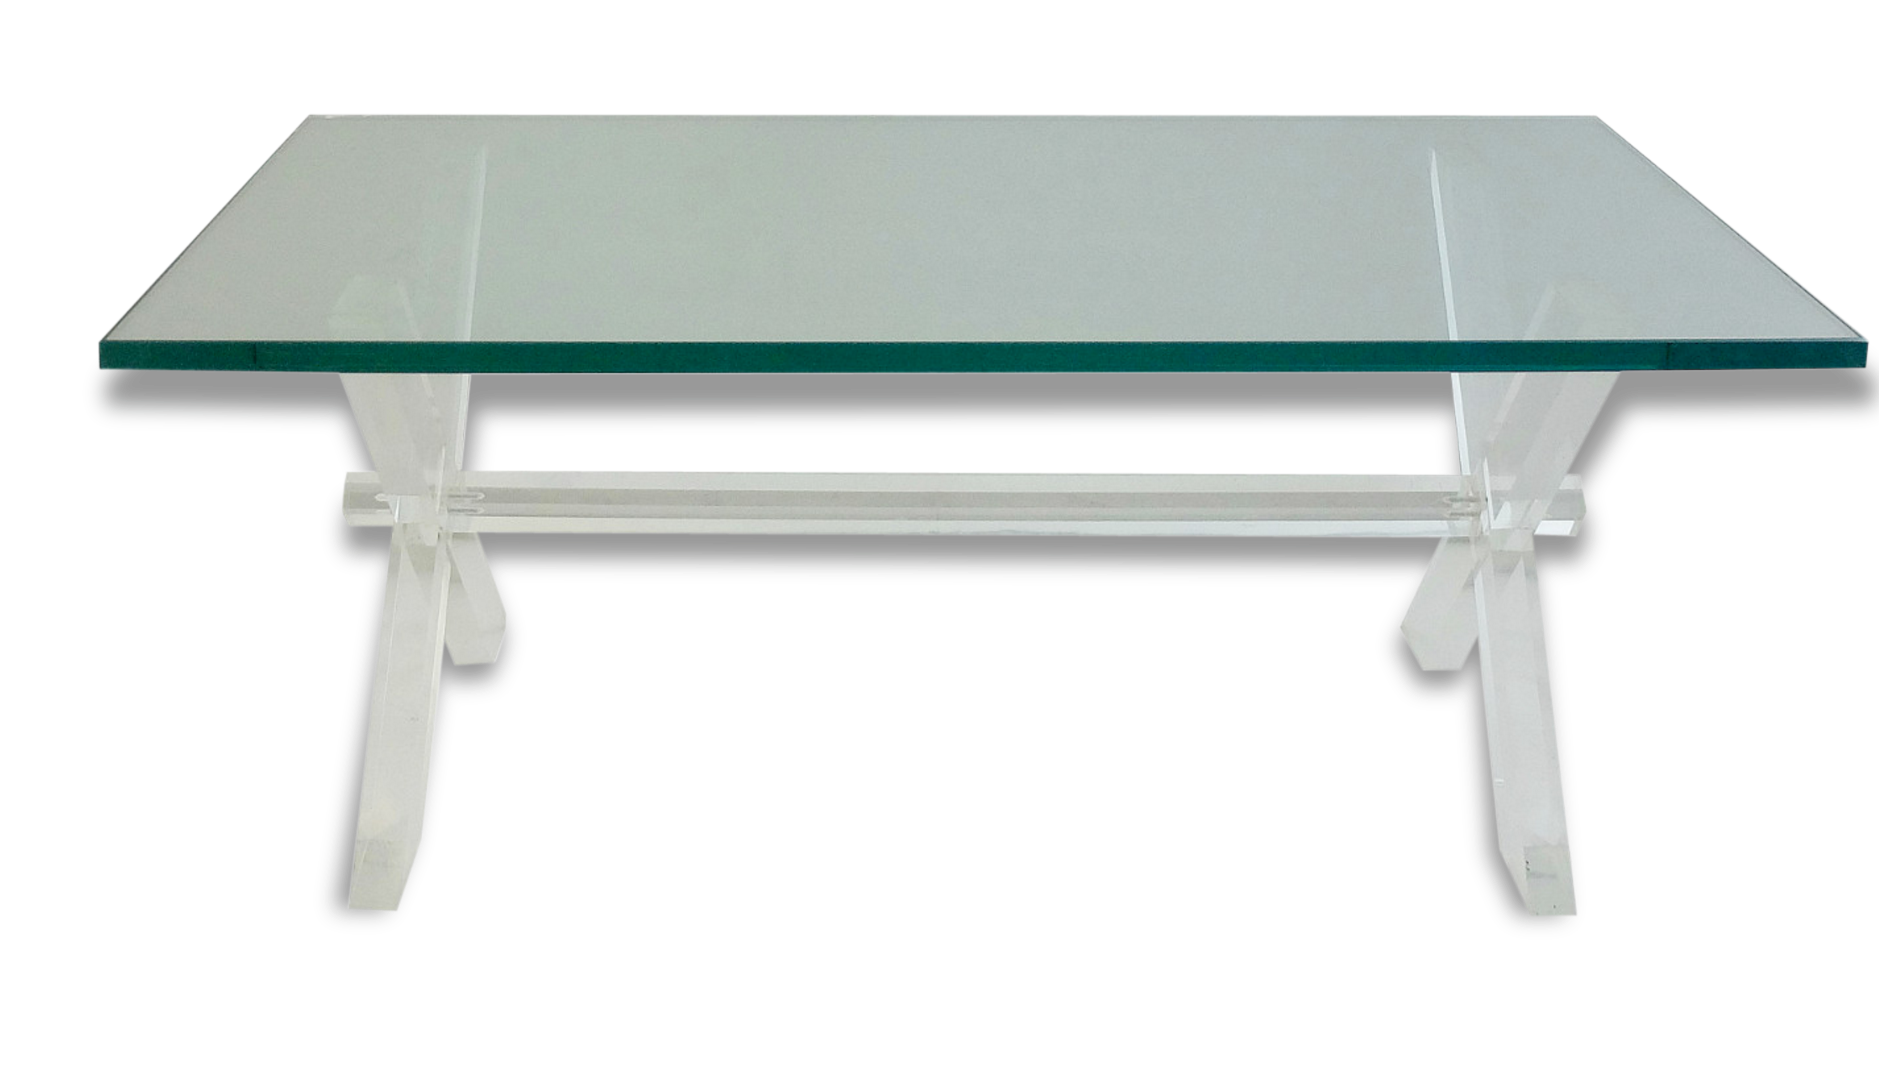 Table Basse Plexiglas Cheap Table Basse Tourmaline En Plexiglas